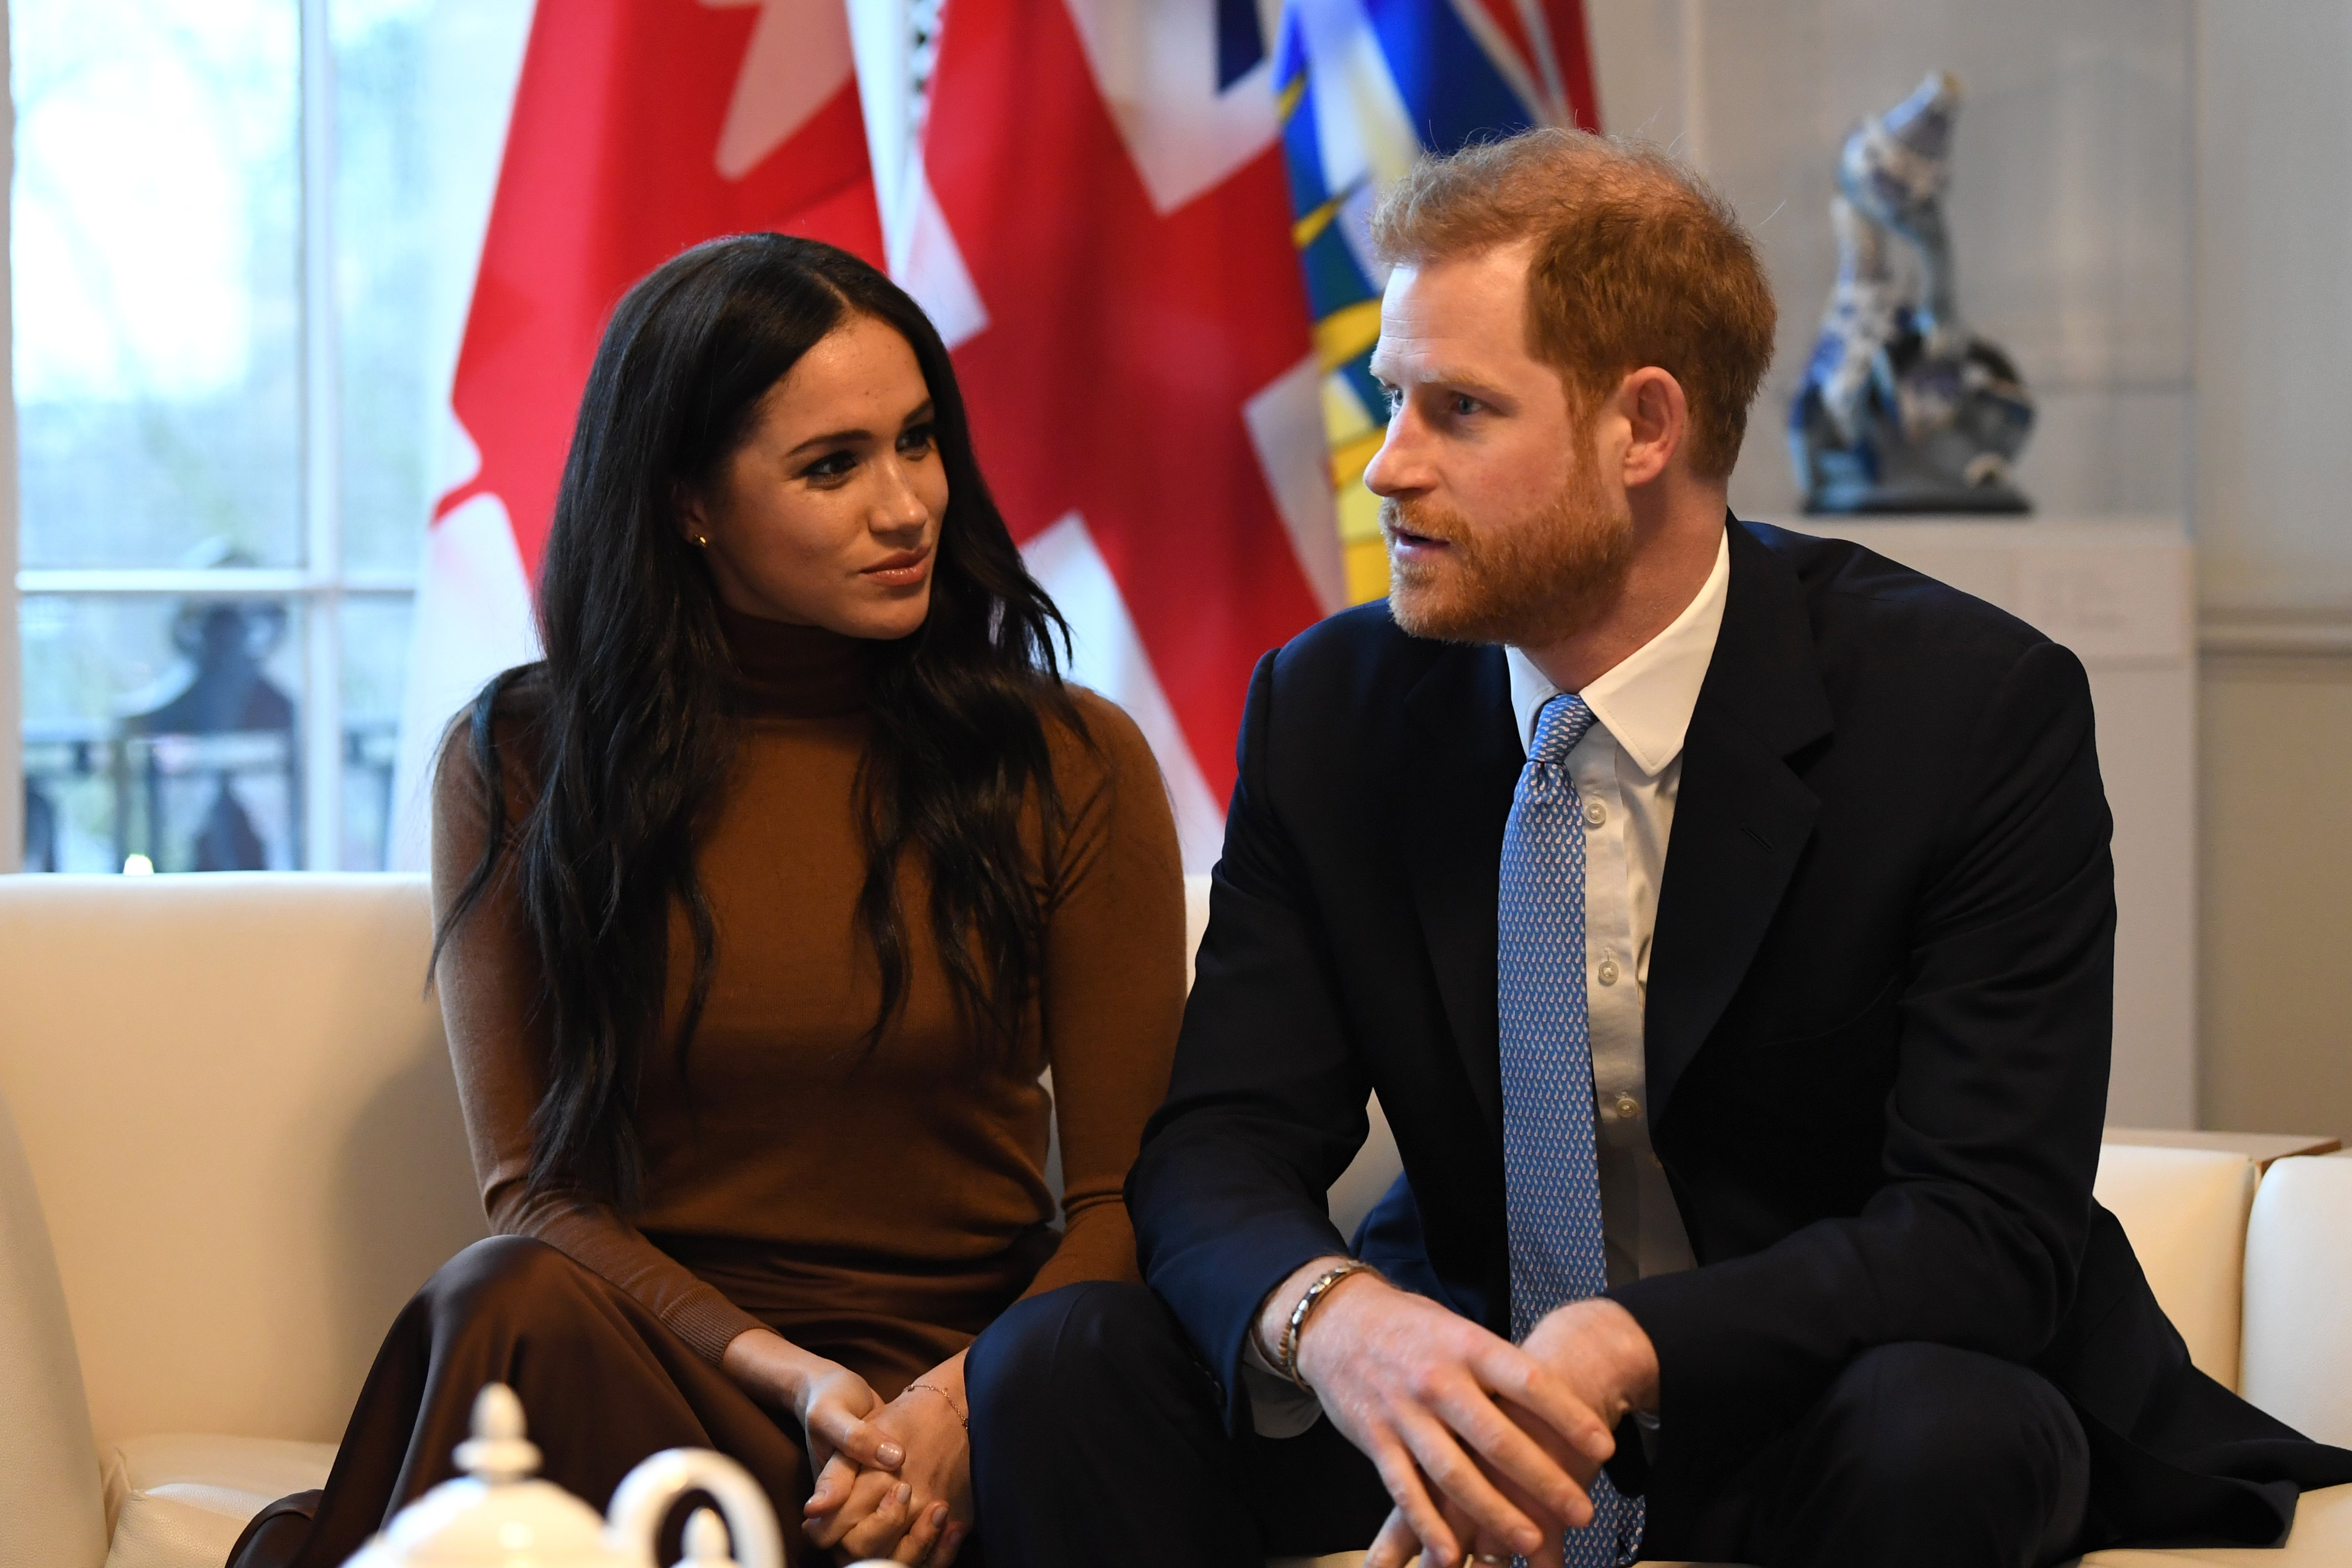 Prince Harry, Duke of Sussex and Meghan, Duchess of Sussex gesture during their visit to Canada House on January 7, 2020. | Source: Getty Images